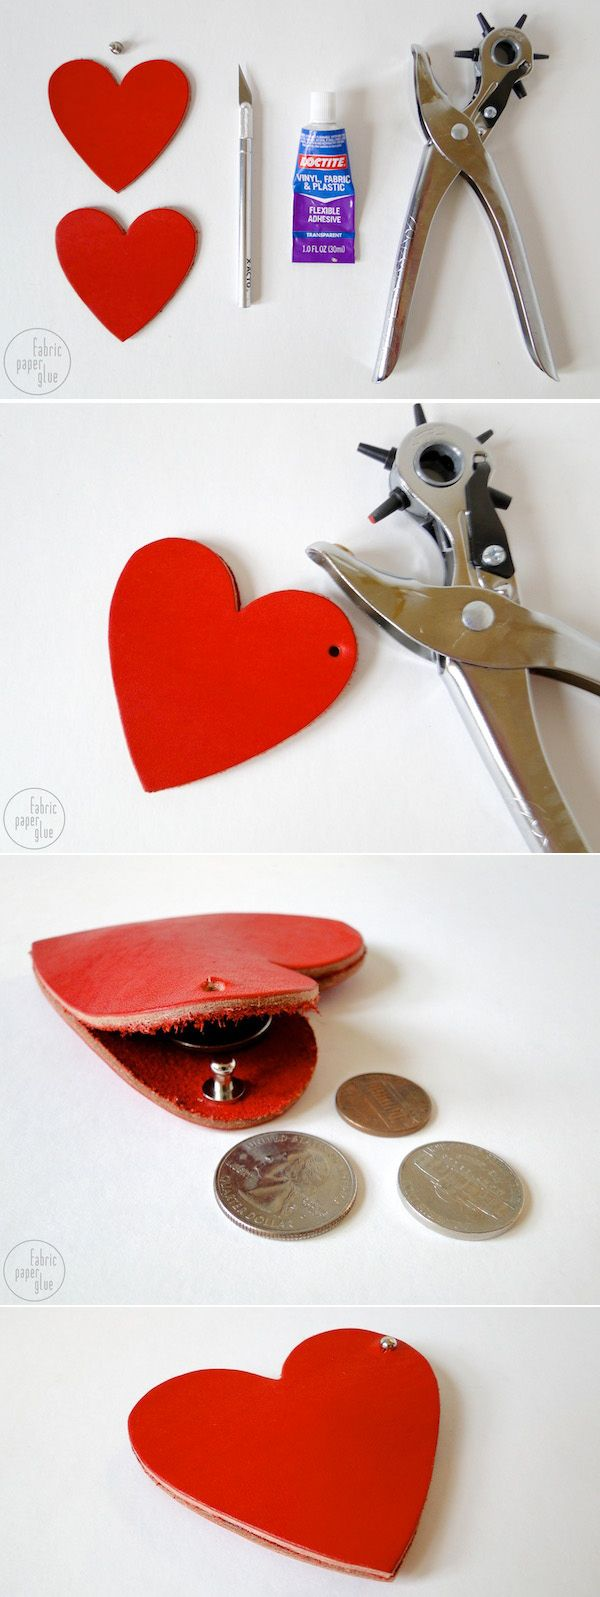 DIY Leather Heart Coin Purse | 29 Last-Minute Valentine's Day Gifts